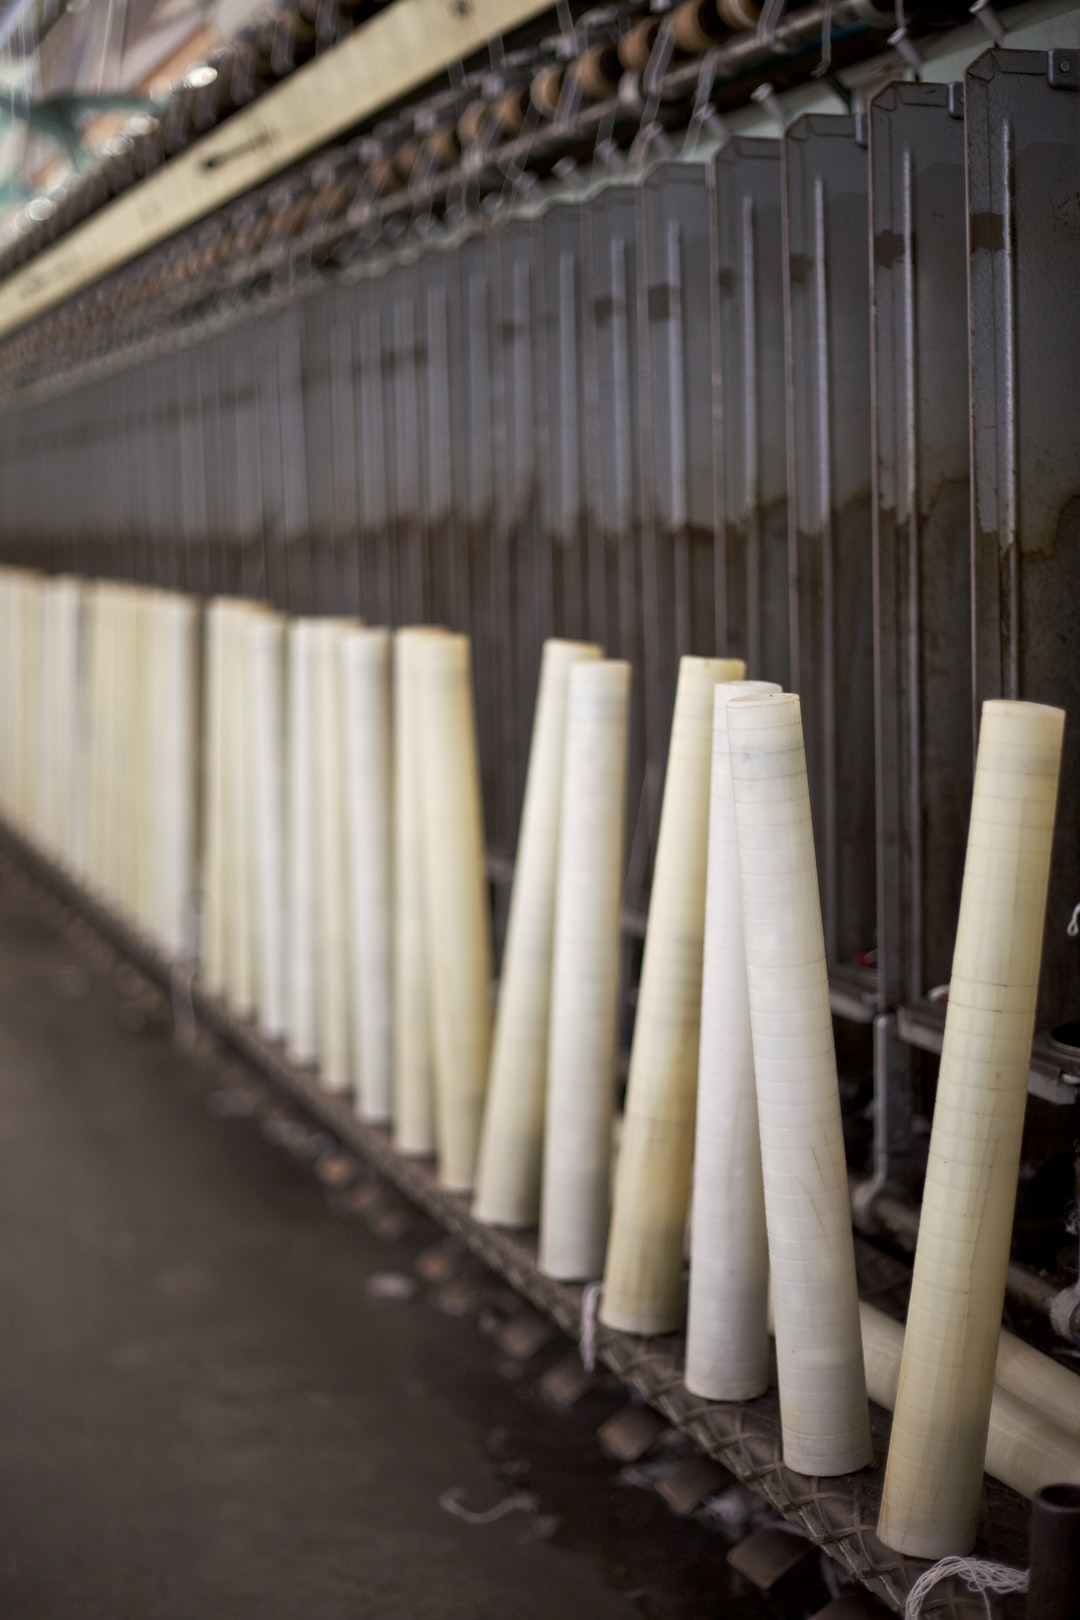 We visited Creswick in regional Victoria today, I was amazed at the machinery used to make cloth and fabric.